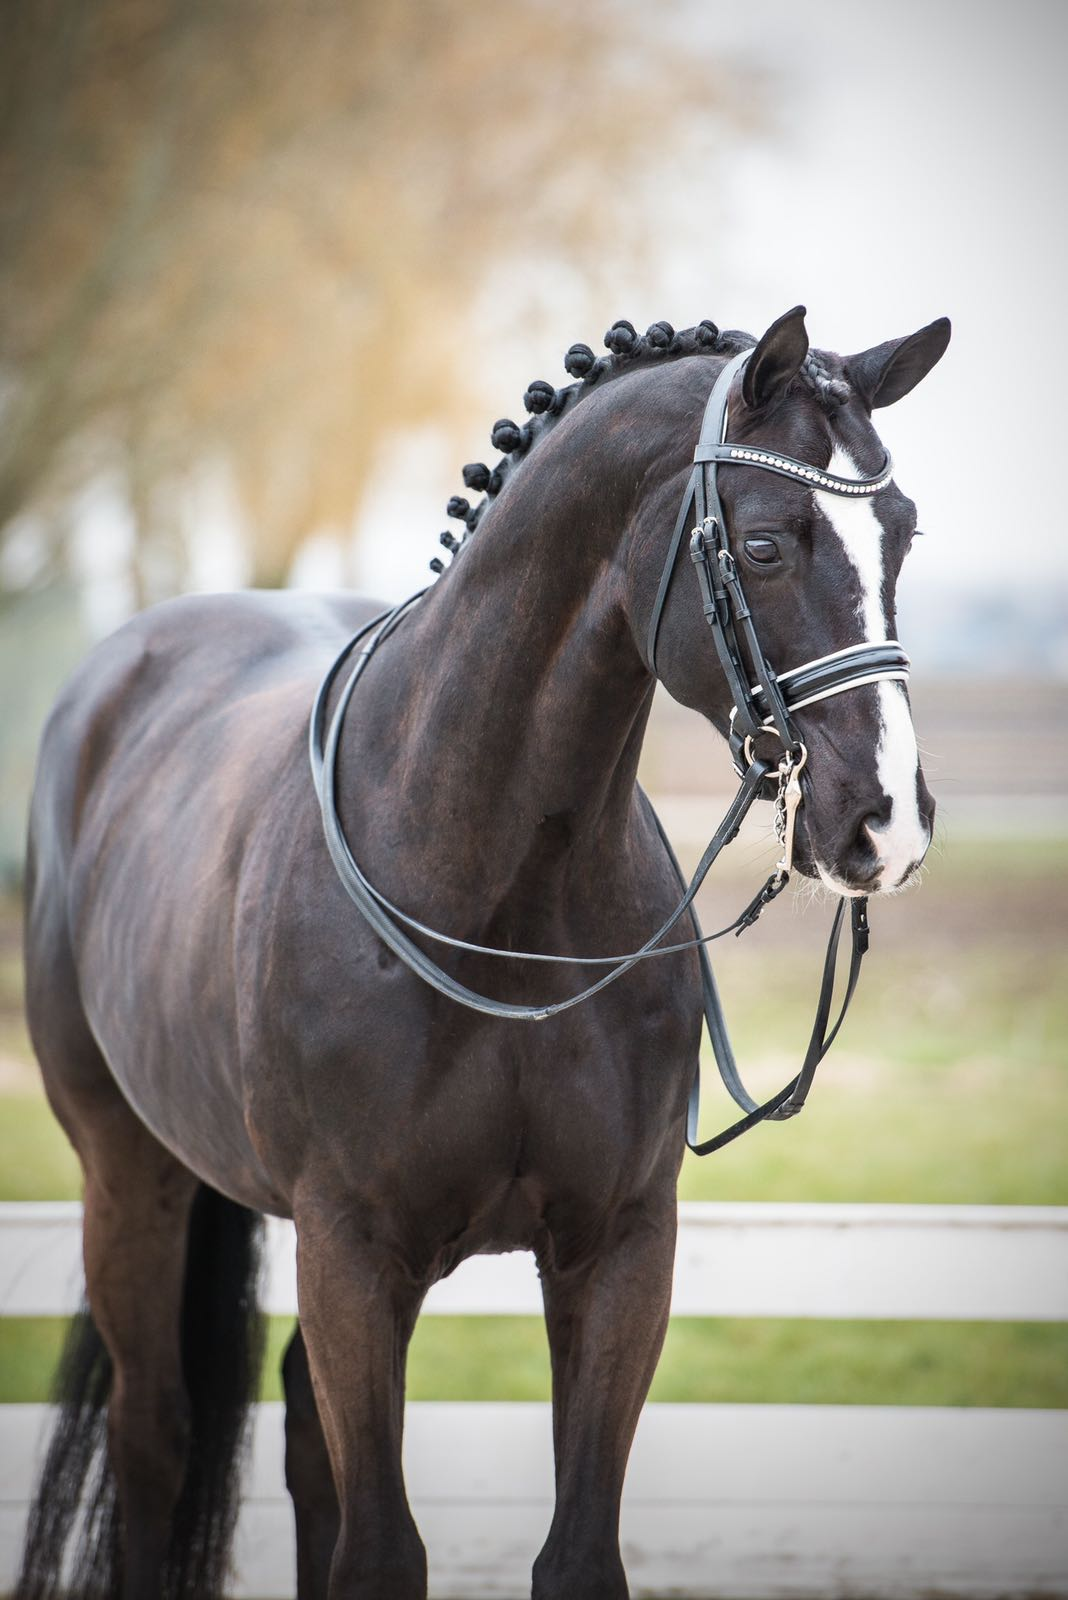 """- Rapper JoeRapper Joe is a gorgeous 2009 year old 16 hand pure black imported Hanoverian gelding. Brilliantly showing the genes of his previous generations, he is just magnificent. This horse has an all-star pedigree including Donnerhall, Weltmeyer, World Cup I, and looks just like his sire Rotspon and grand sire Rubenstein, pitch-black, well built with strong haunches and free shoulders. """"RJ"""" has shown 4th Level and Prix St. Georges and has an FEI passport. He is extremely fun and has super expressive gaits with talent for collection. Huge Wow Factor and extremely competitive. Perfect for the ambitious Junior/Young Rider looking for the horse to get into the FEI arena, or a horse to start your small-tour competitive career, or get your silver medal. Safe enough for the amateur, competitive horse for the Junior/Young Rider and quality and bloodlines for the professional.Pricing tier: P4"""